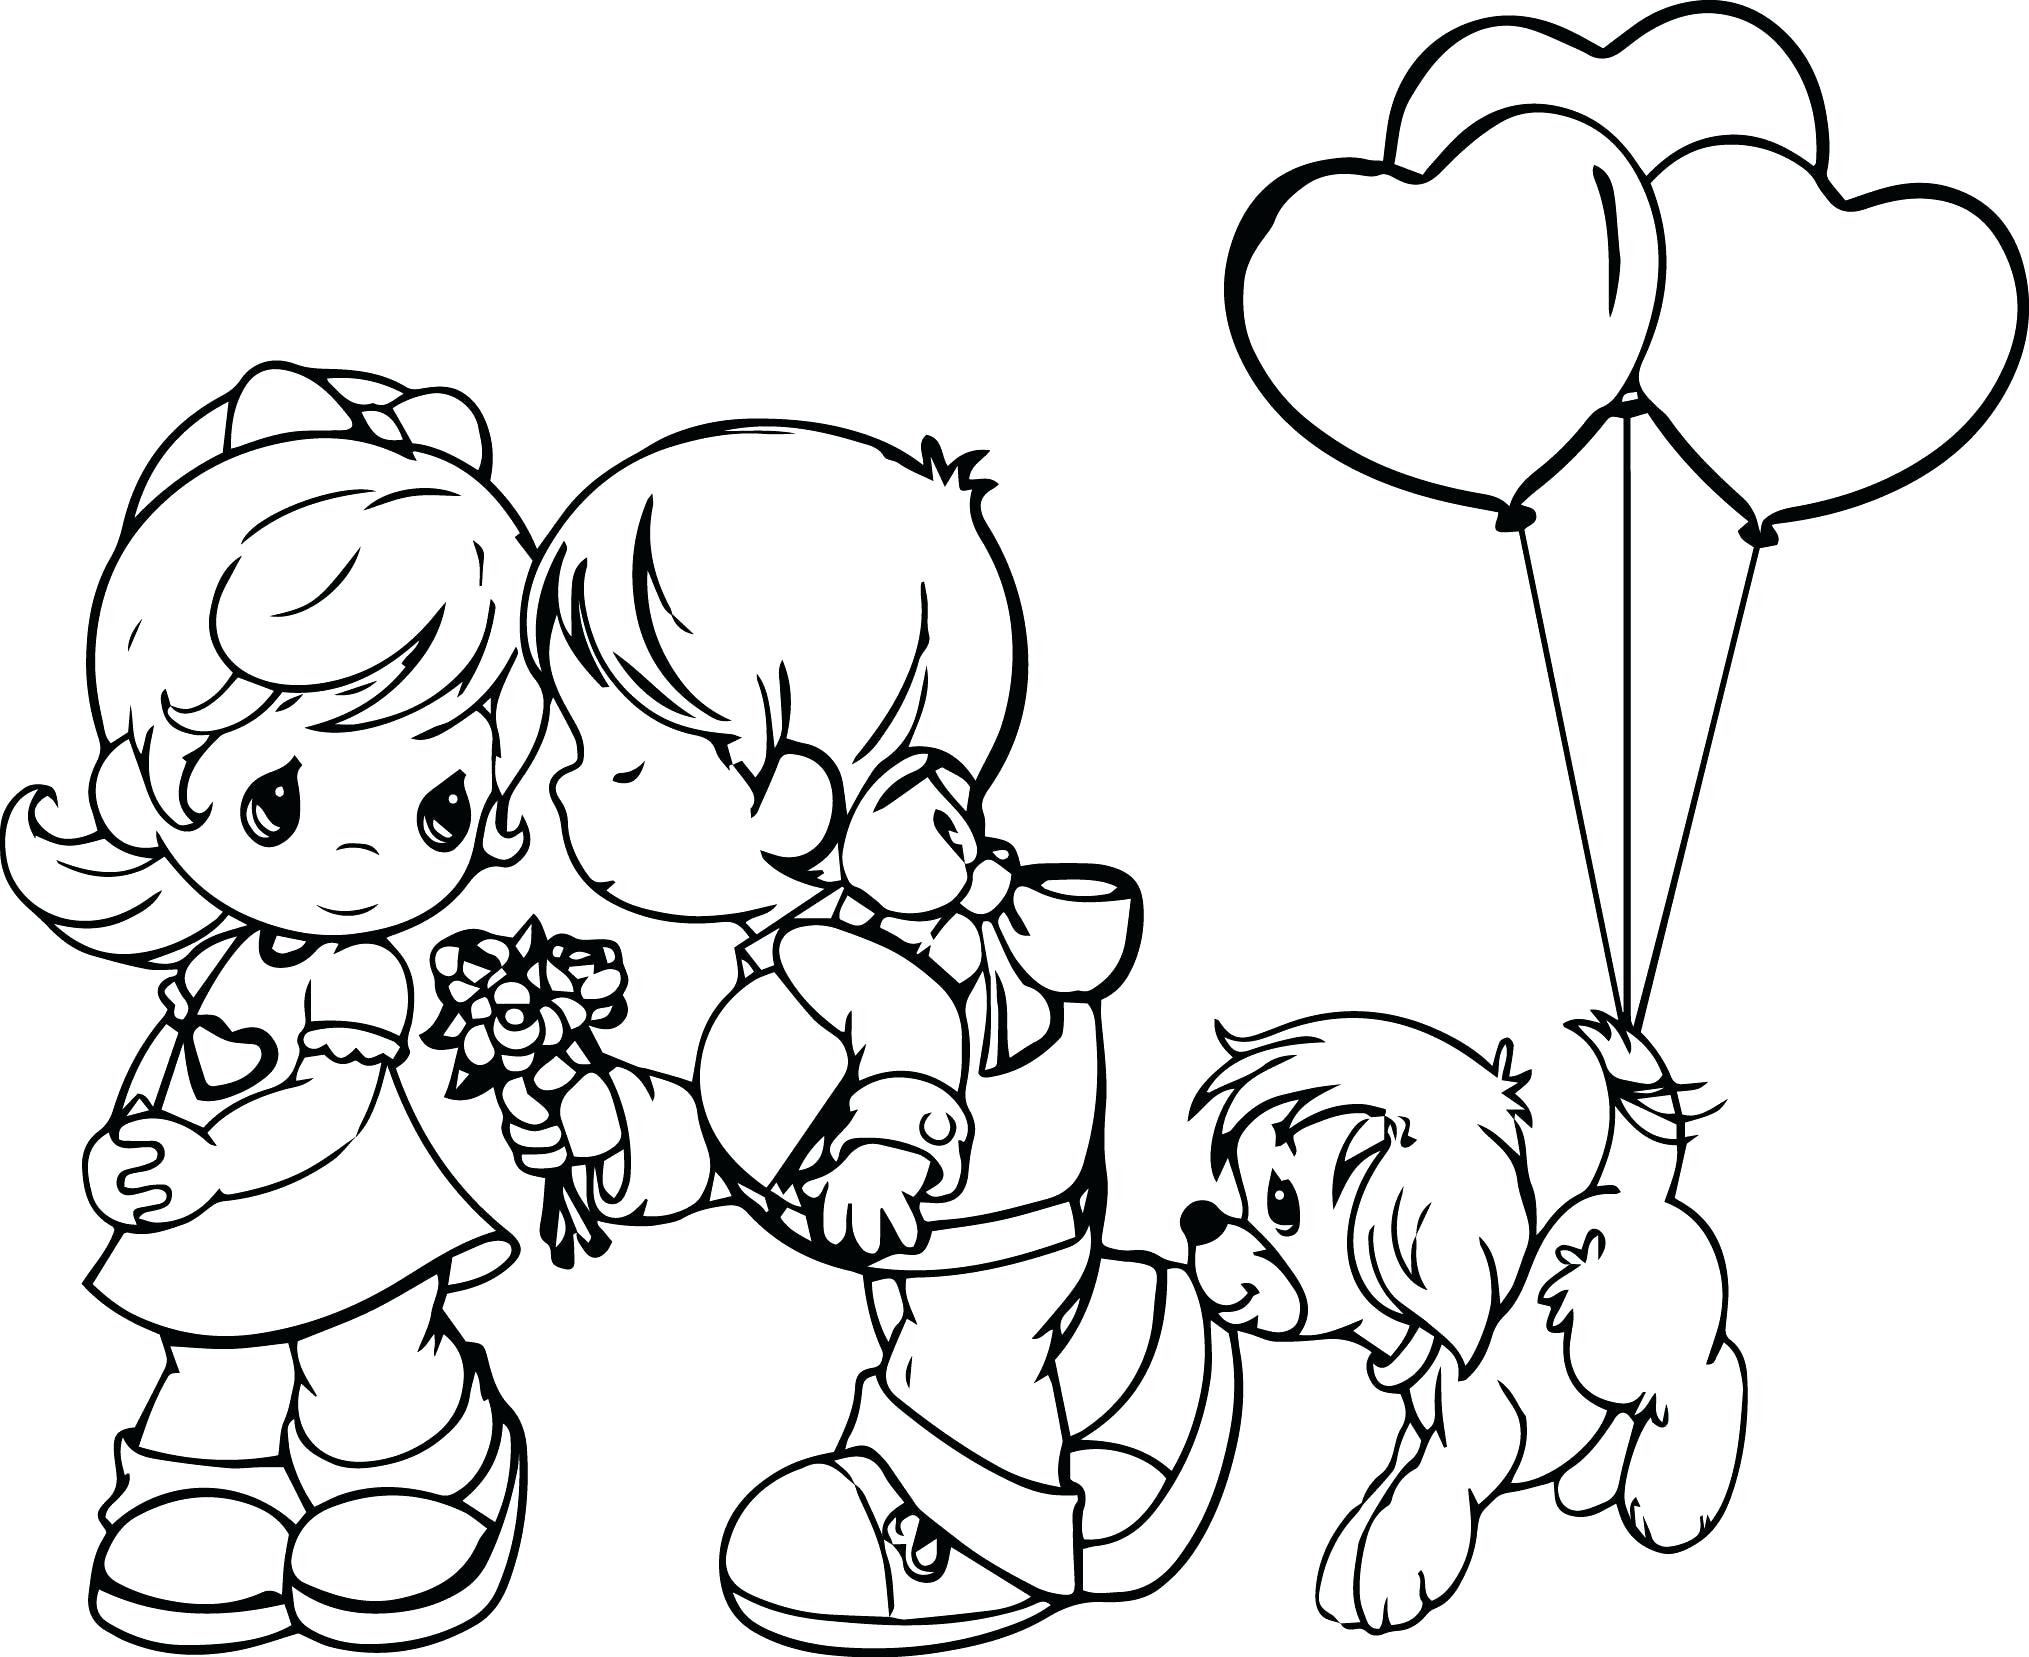 Precious Moments Letters Coloring Pages Precious Moments Angel Drawing Free Download Best Precious Moments